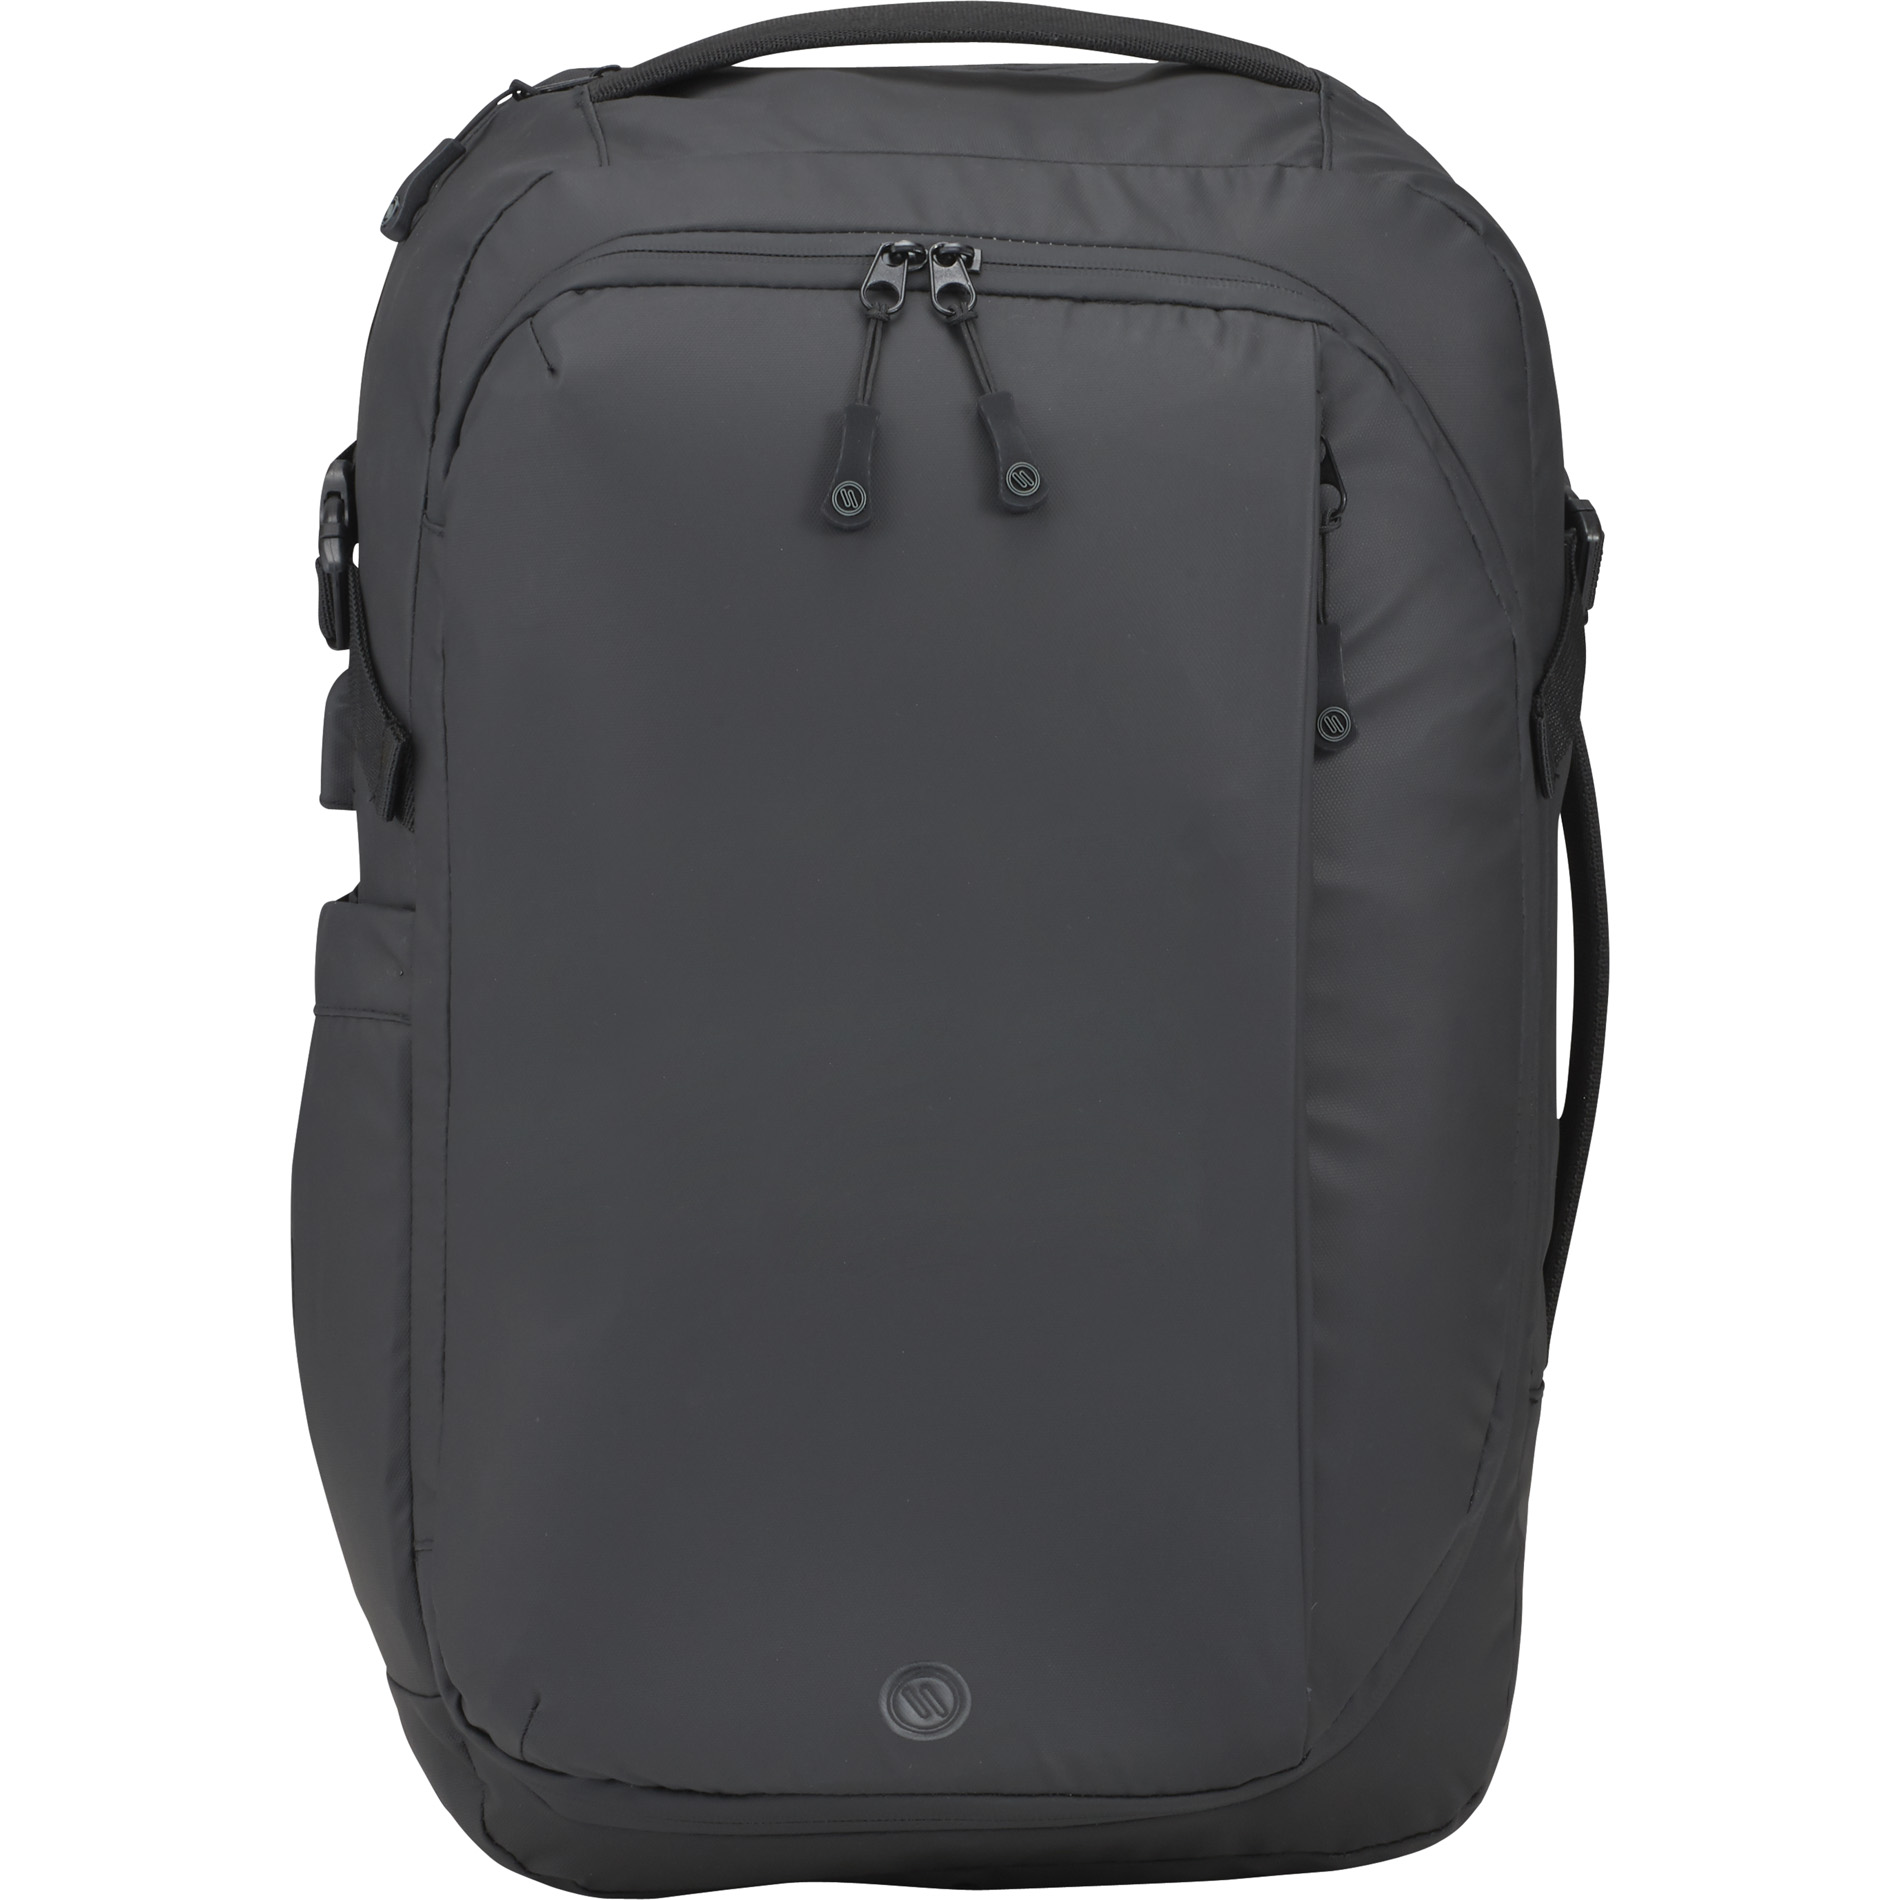 "elleven 0011-03 - Numinous 15"" Computer Travel Backpack"